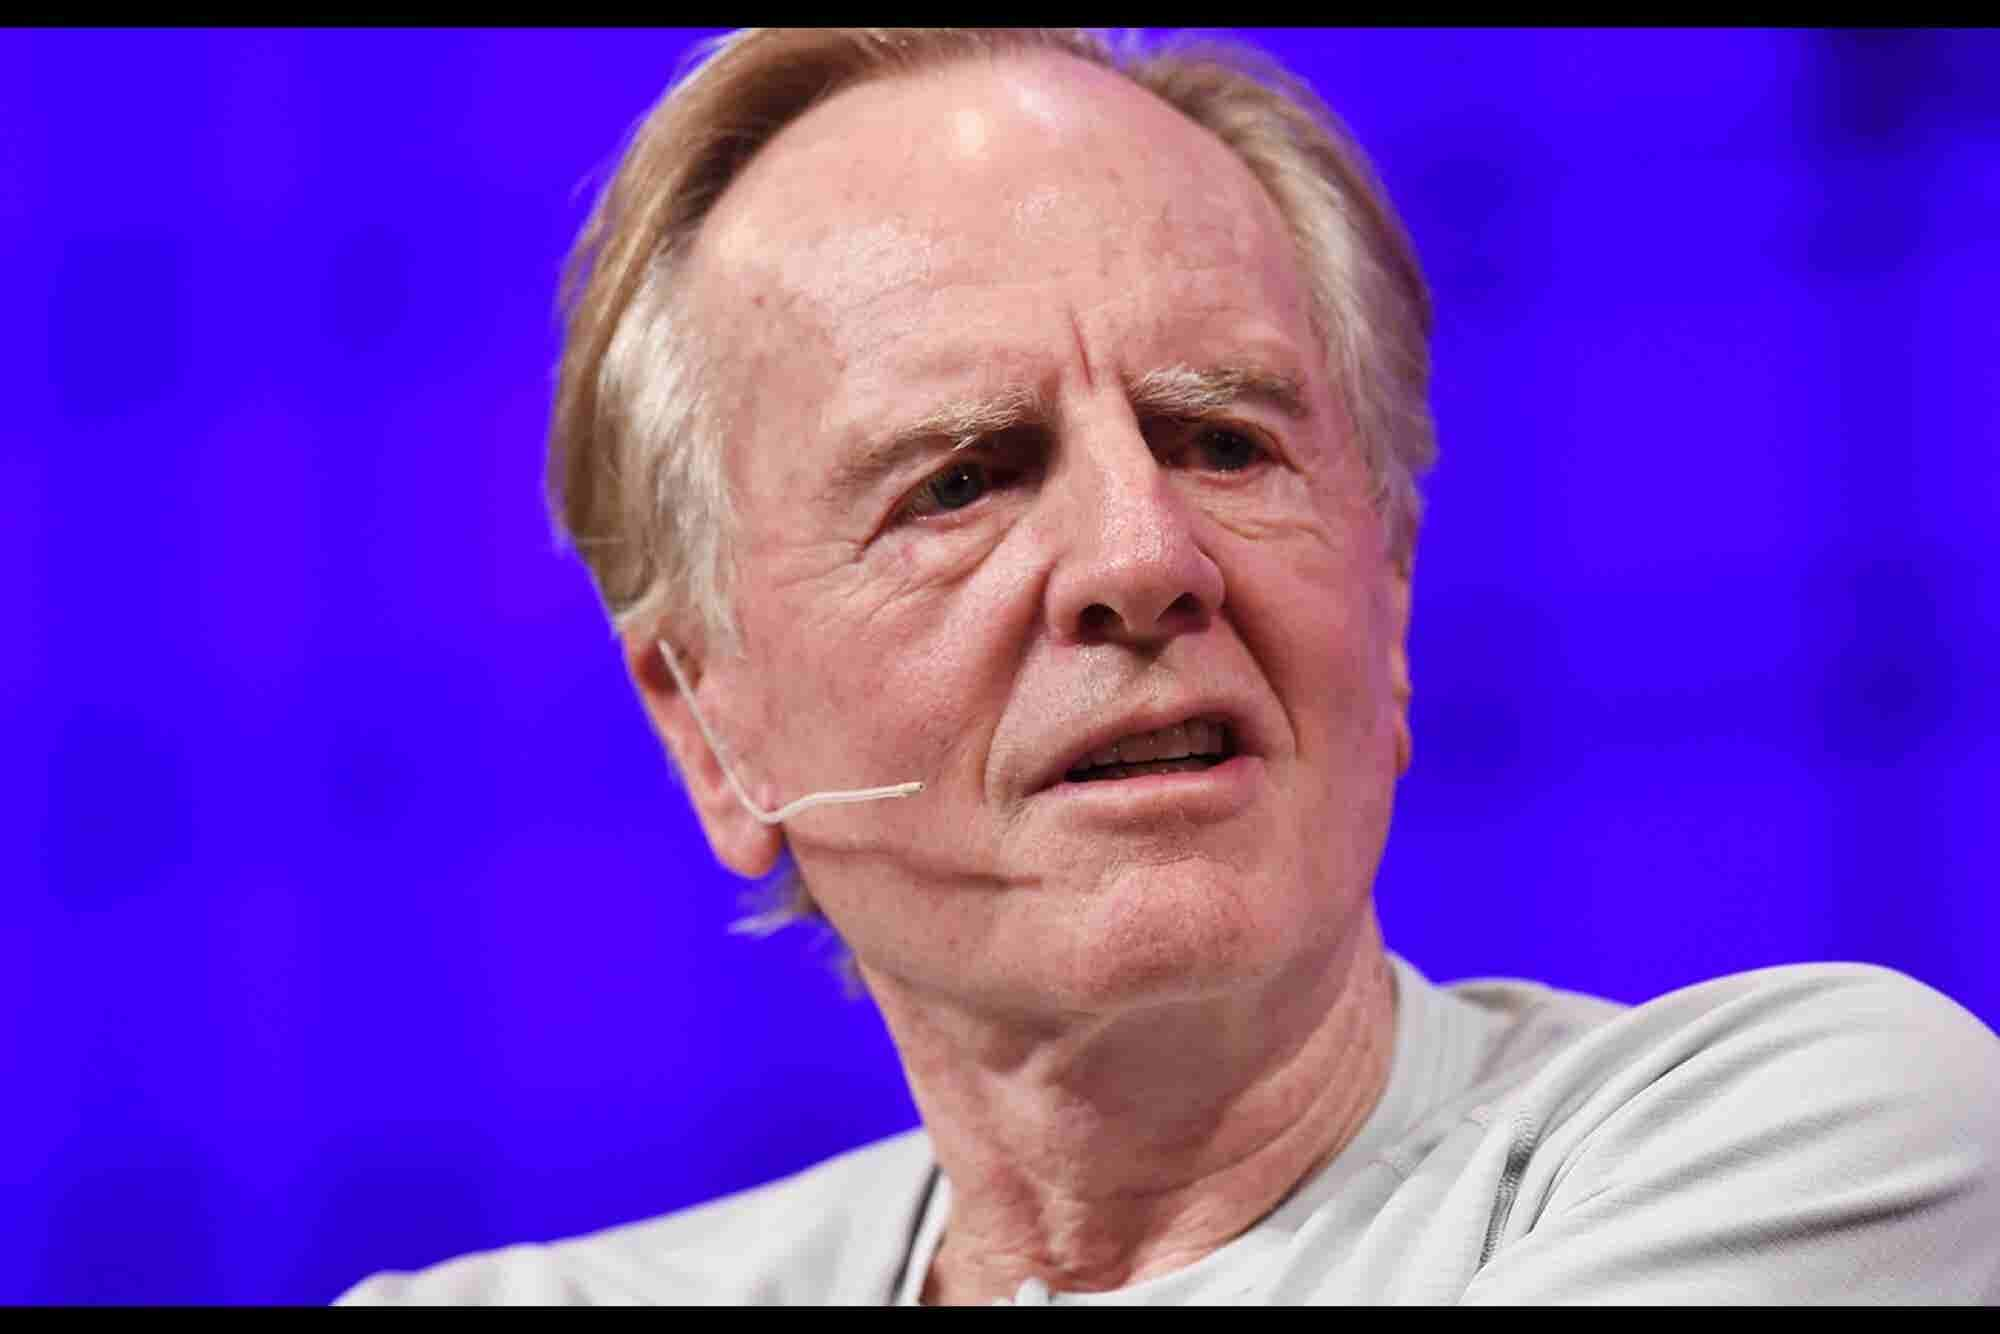 When John Sculley's Back is Against the Wall, He Does This: Your Weekly Tips